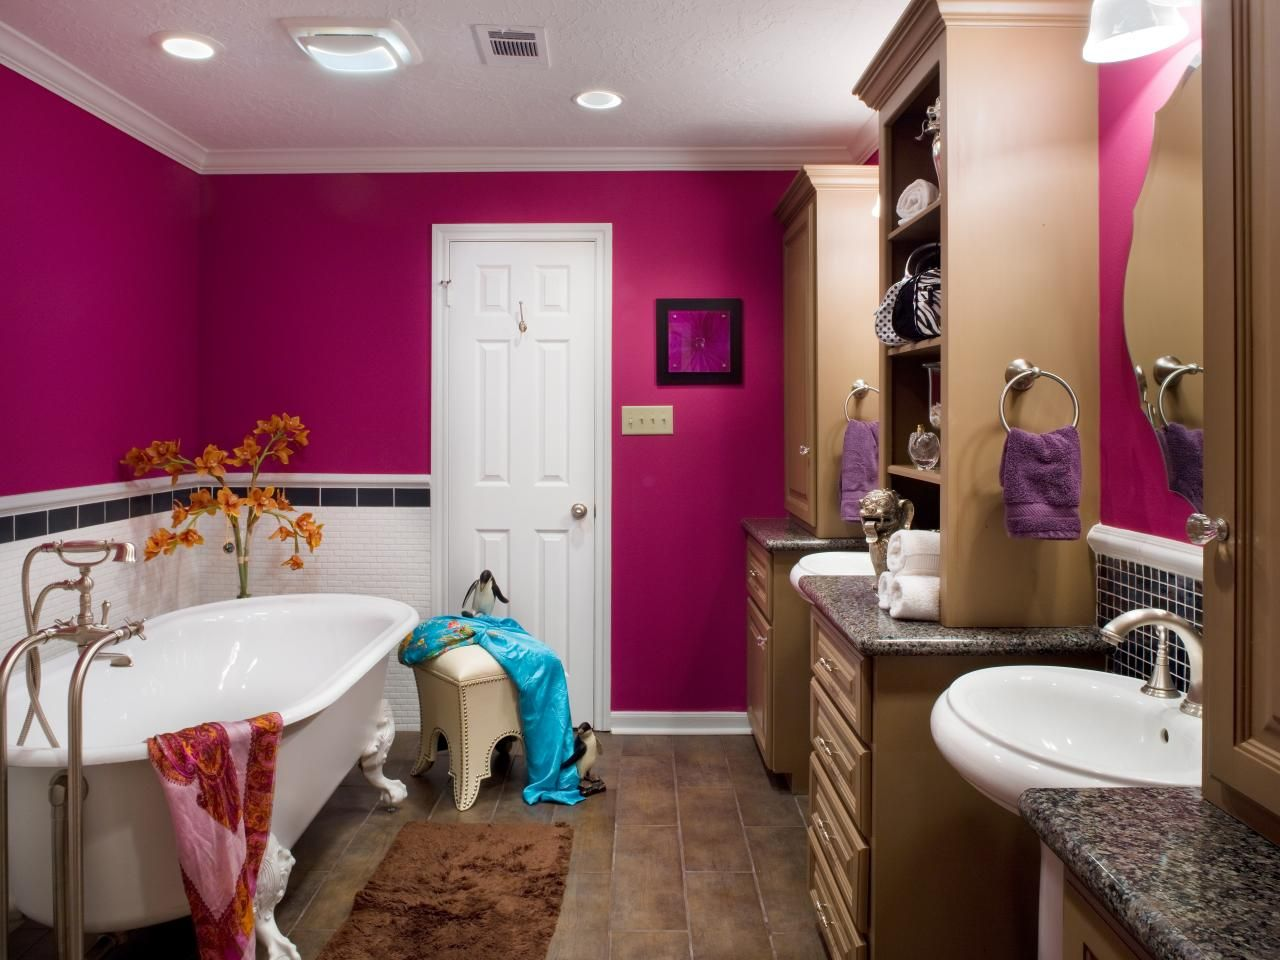 Best Photo Gallery Websites Find this Pin and more on Home Inspiration by izzbell Chic and Pretty Pink Bathroom Designs